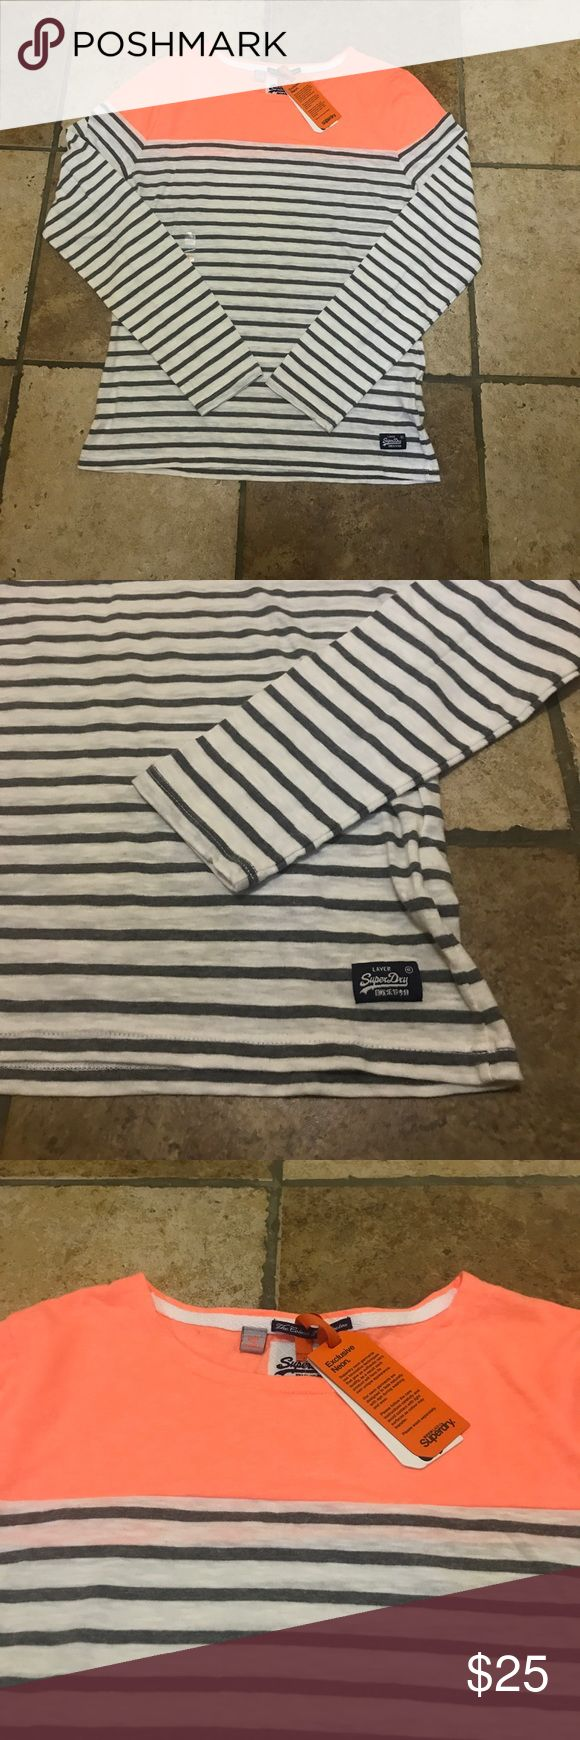 Super Dry Long Sleeve Top Super Dry long sleeve top with stripes and top color block detail. Brand new, no stains, damages or pills. Great condition tags attached. Super Dry Tops Tees - Long Sleeve